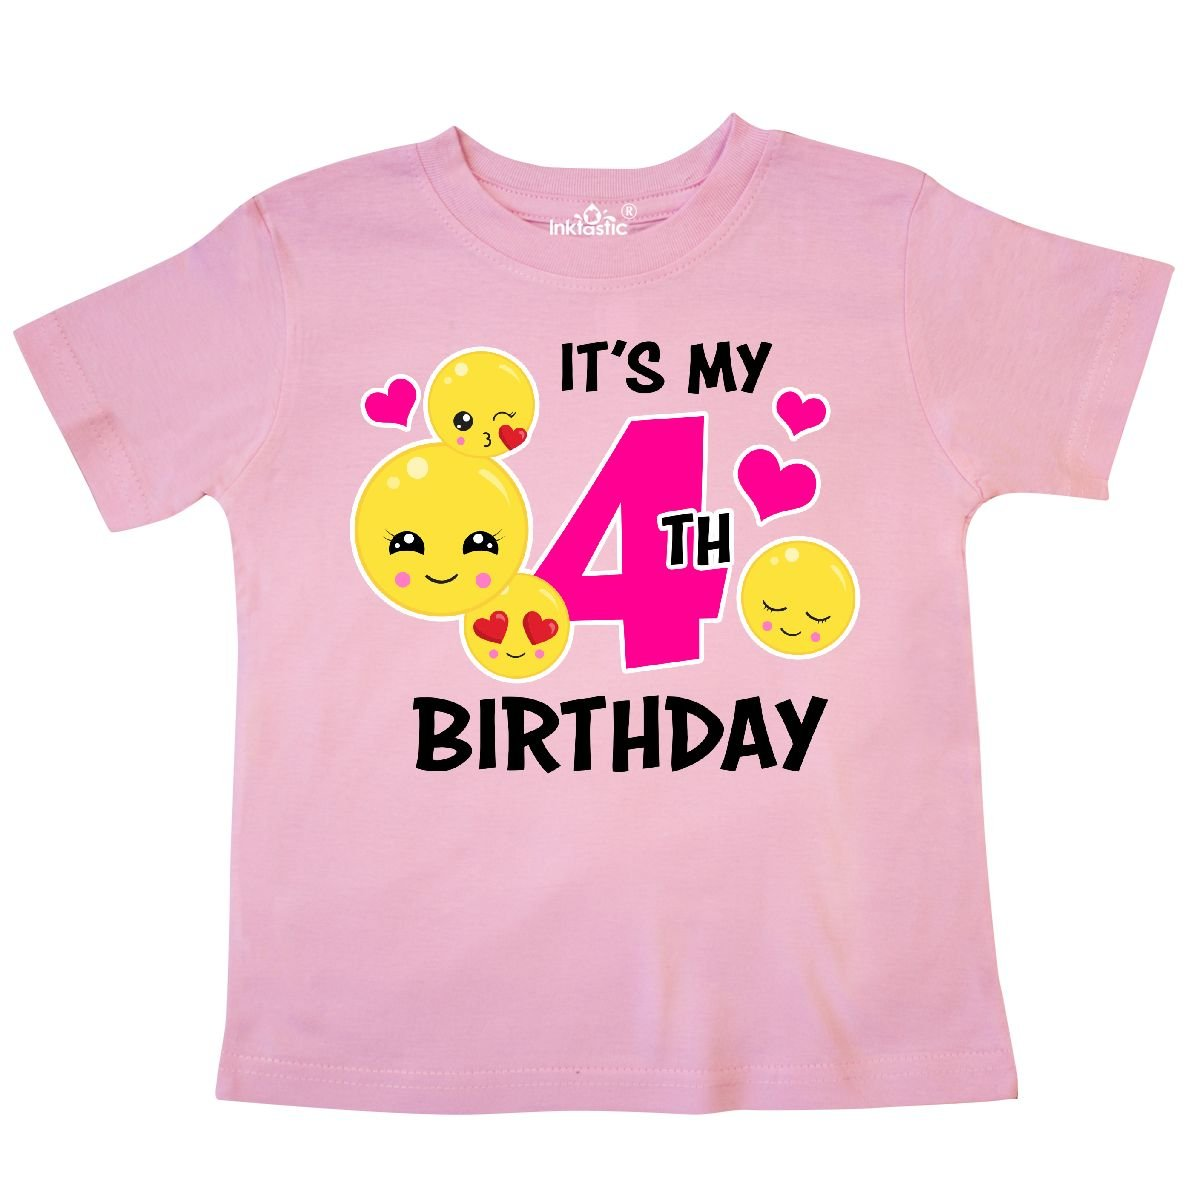 inktastic Its My 4th Birthday with Emojis Toddler T-Shirt